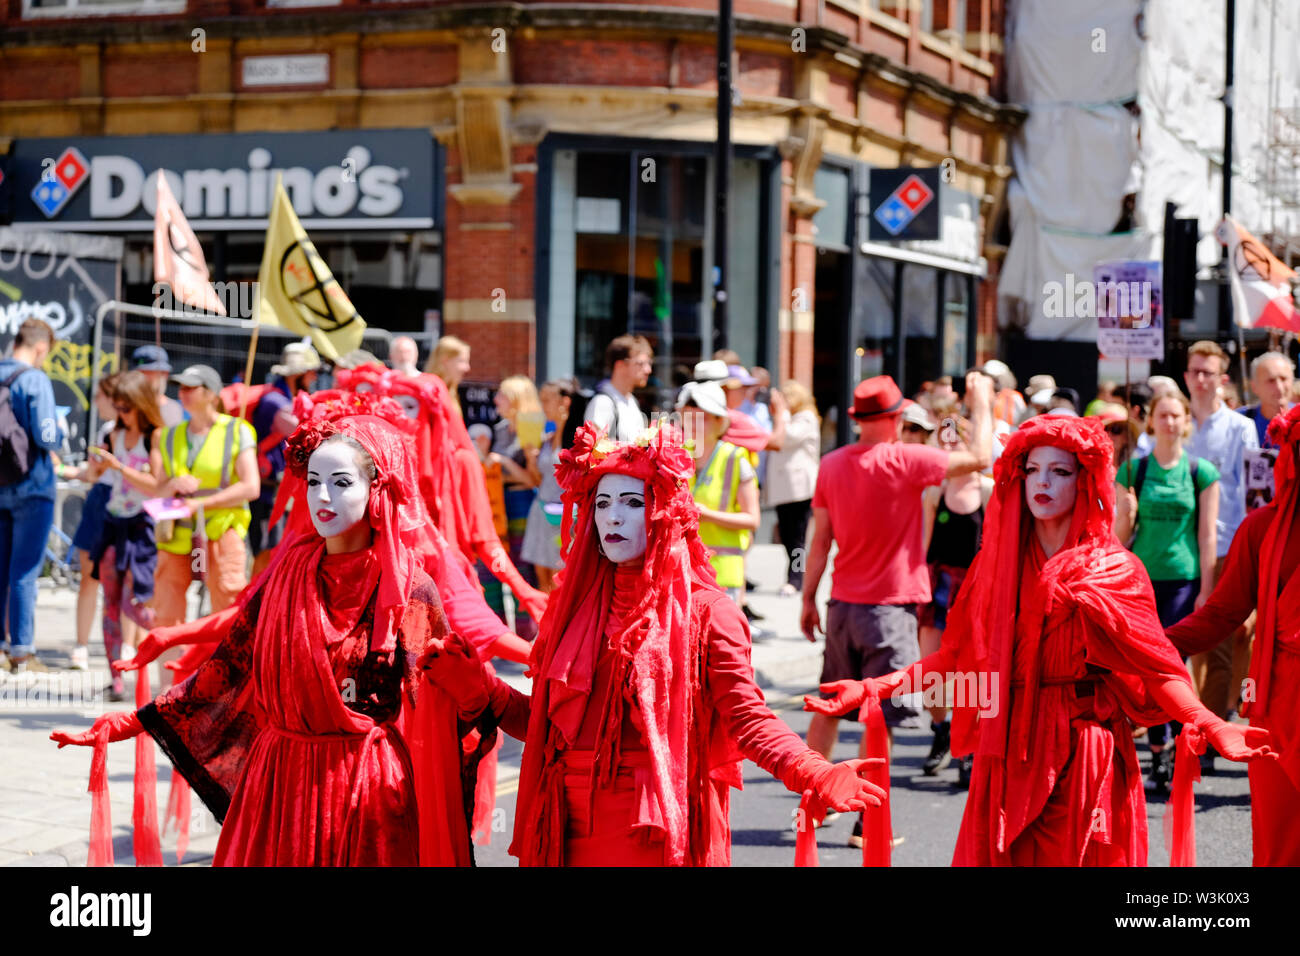 Bristol, UK, 16th July 2019.  Red Brigade at Day 2 of the Extinction rebellion movement summer uprising, the occupation of Bristol Bridge continues. The protest is to raise awareness of the speed of climate change and the lack of action to stop it. The protestors have worked with local agencies to ensure a safe and peaceful protest, police are present and diversions in place. Further occupations are planned throughout the city this week. Marching to college green. Credit: Mr Standfast / Alamy Live News Stock Photo